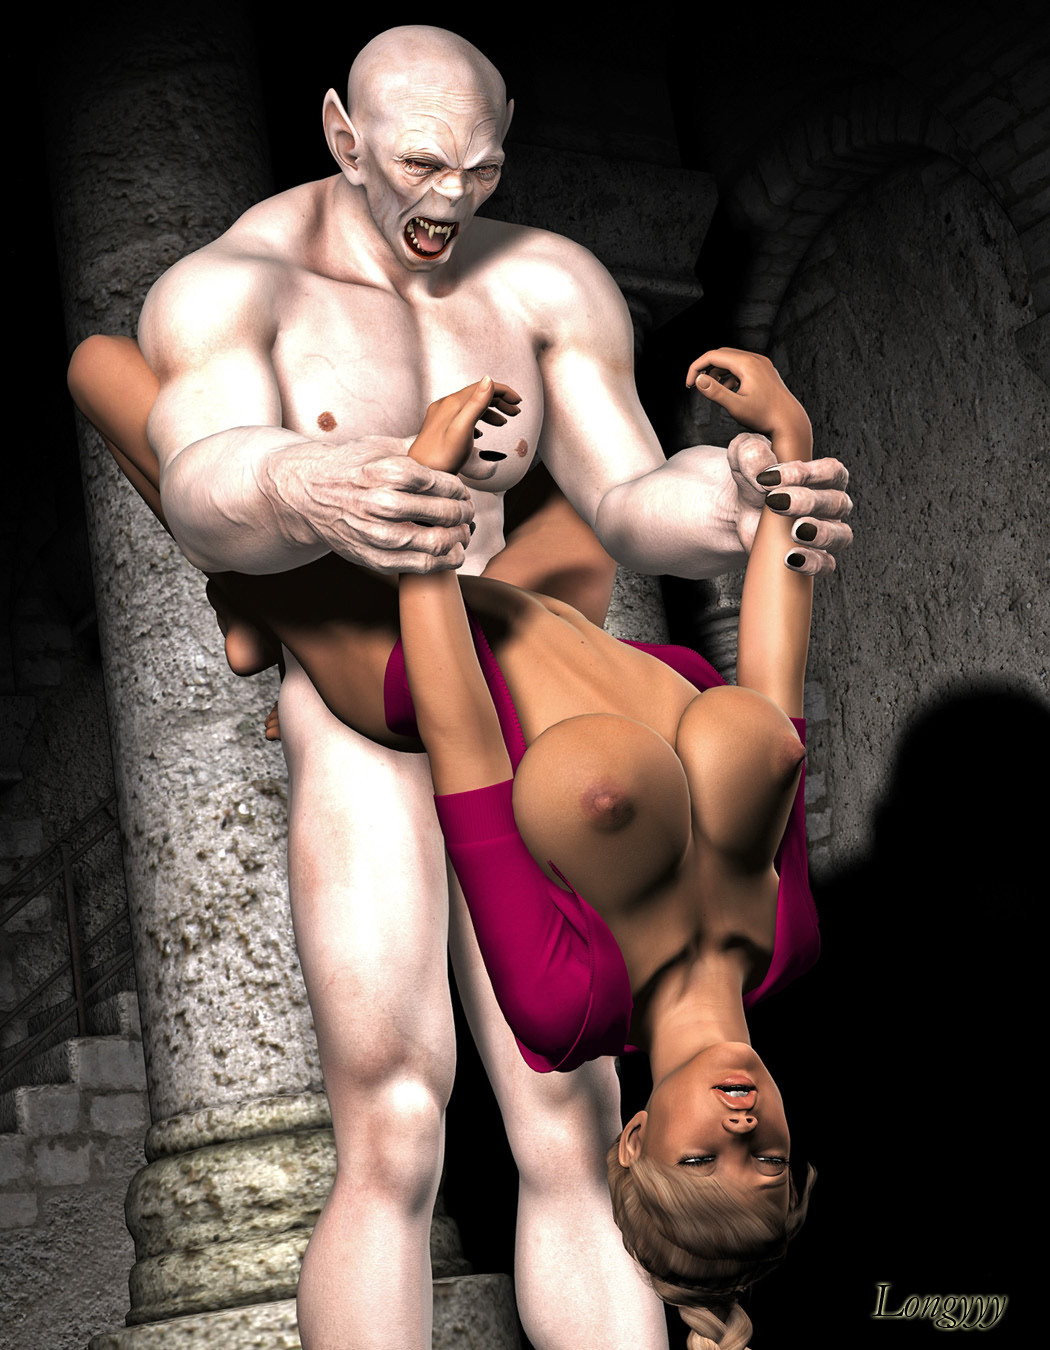 Vampire sex beautiful girl 3d picture sexy scene